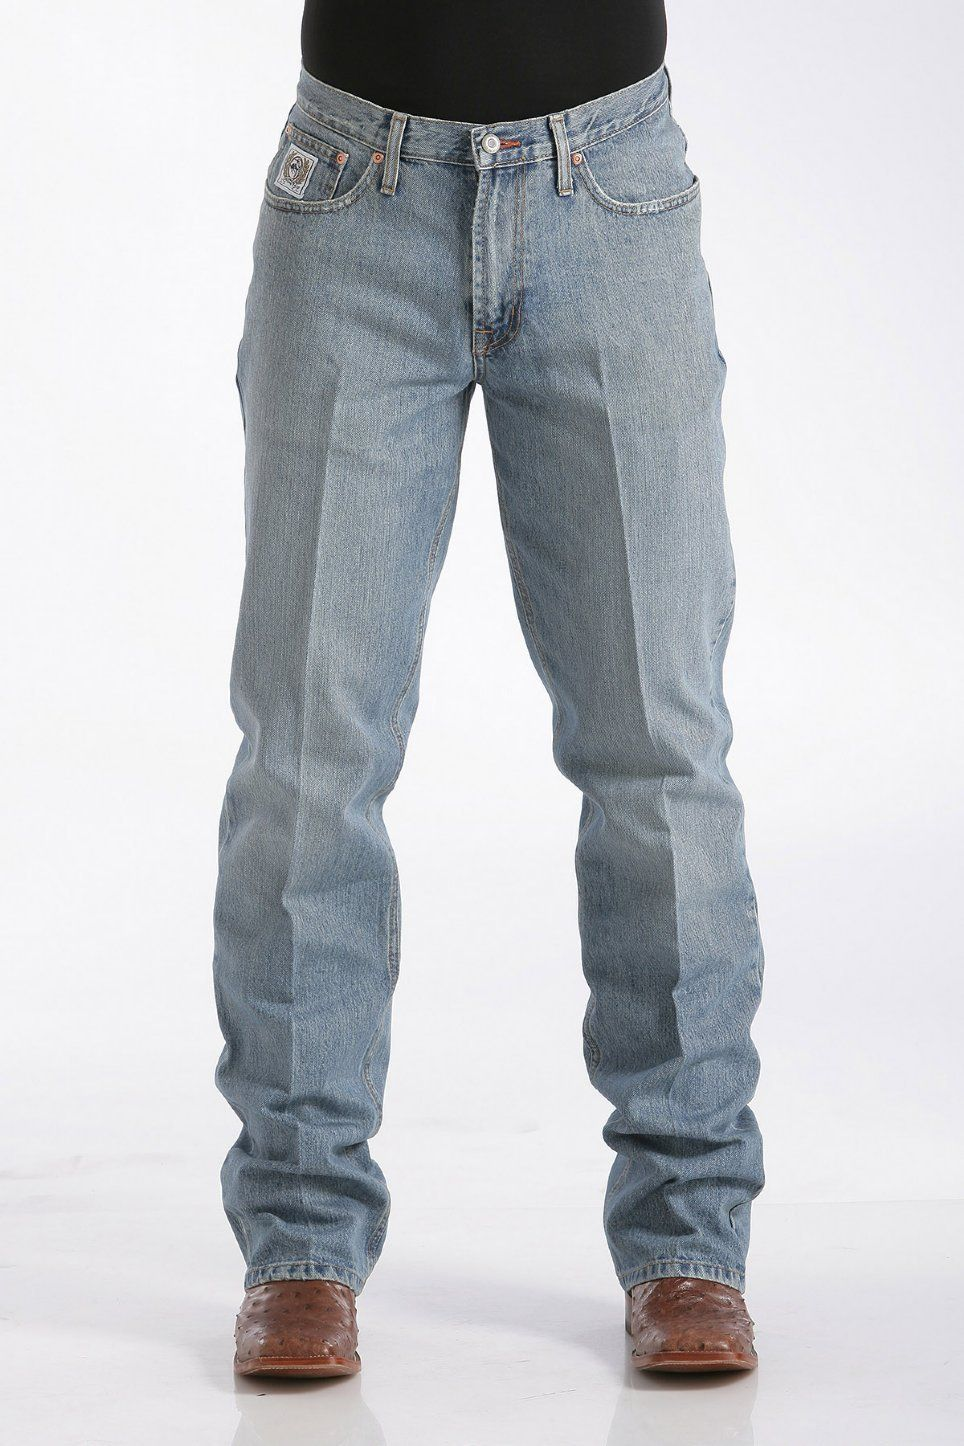 355c410cd7f WHITE LABEL - Mid Rise, Relaxed, Straight Leg The best-selling Cinch White  Label jean is available in many finishes, and features a mid rise and  relaxed ...